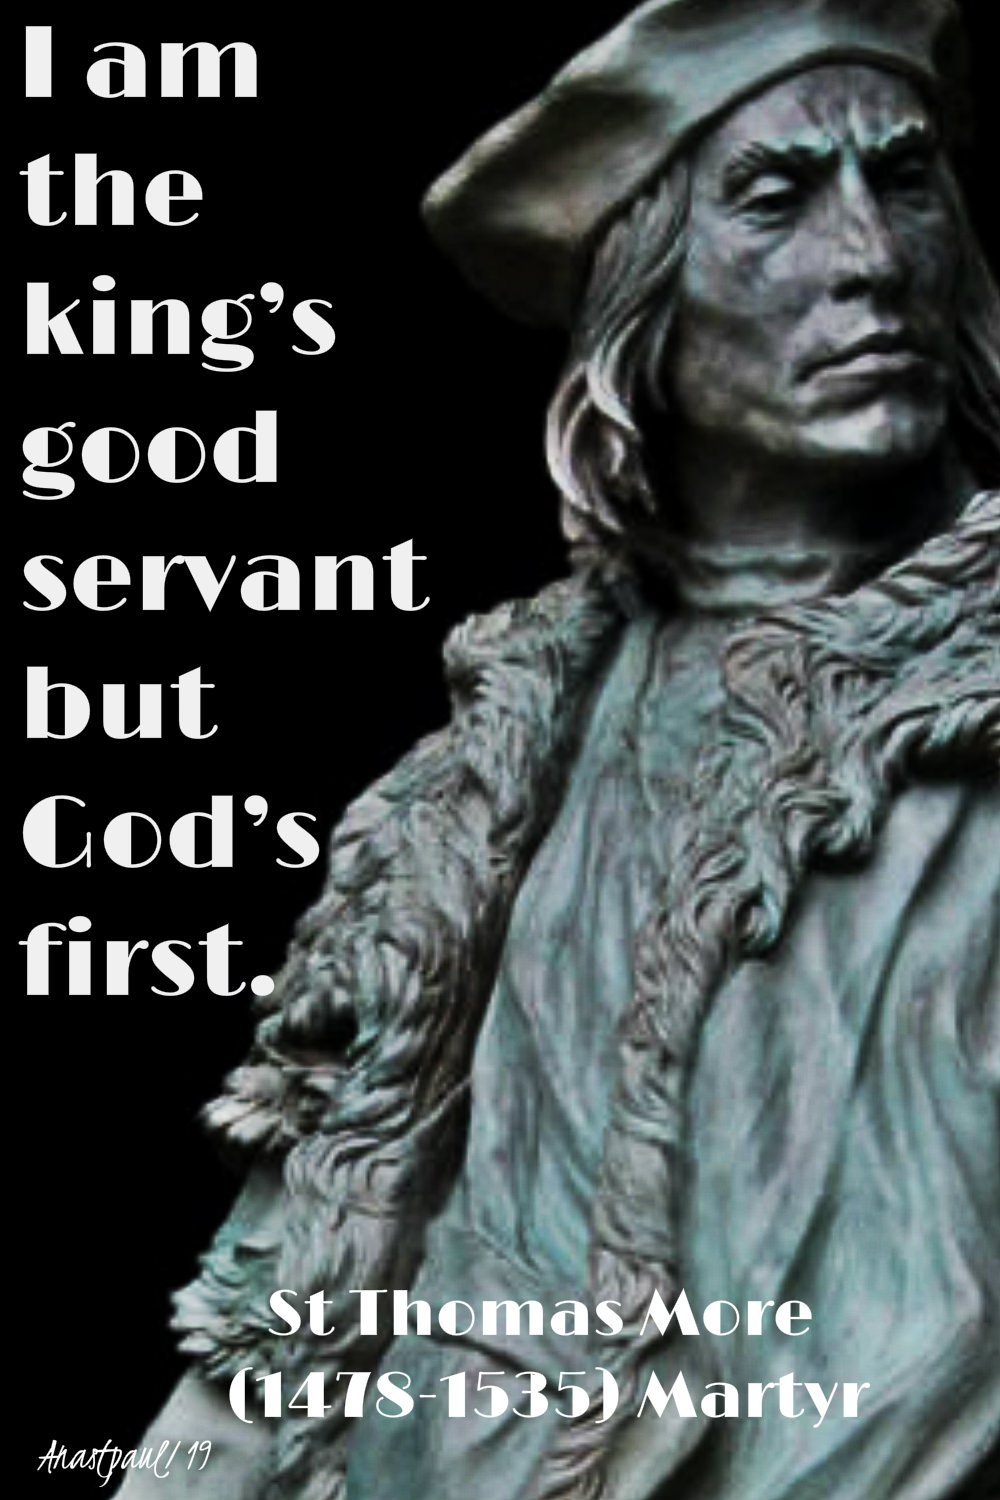 i am the kings good servant but god's first - st thomas more 29 jan 2019.jpg